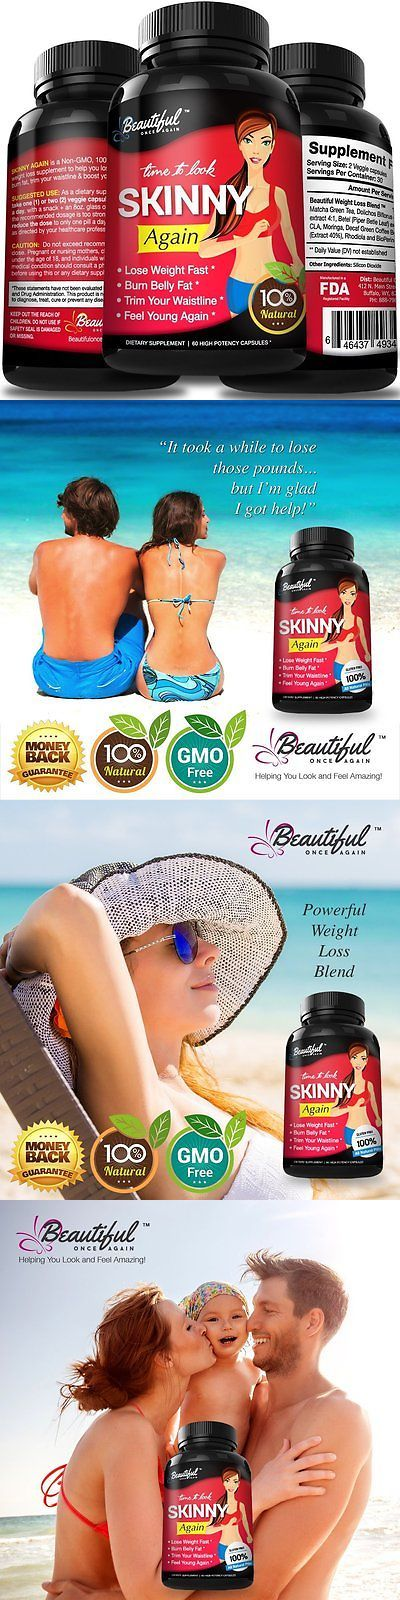 Appetite Control Suppressants: Diet Pills Skinny Again, Lose Belly Fat Fast 100% Natural, Non-Gmo, Gluten Free -> BUY IT NOW ONLY: $36.83 on eBay!